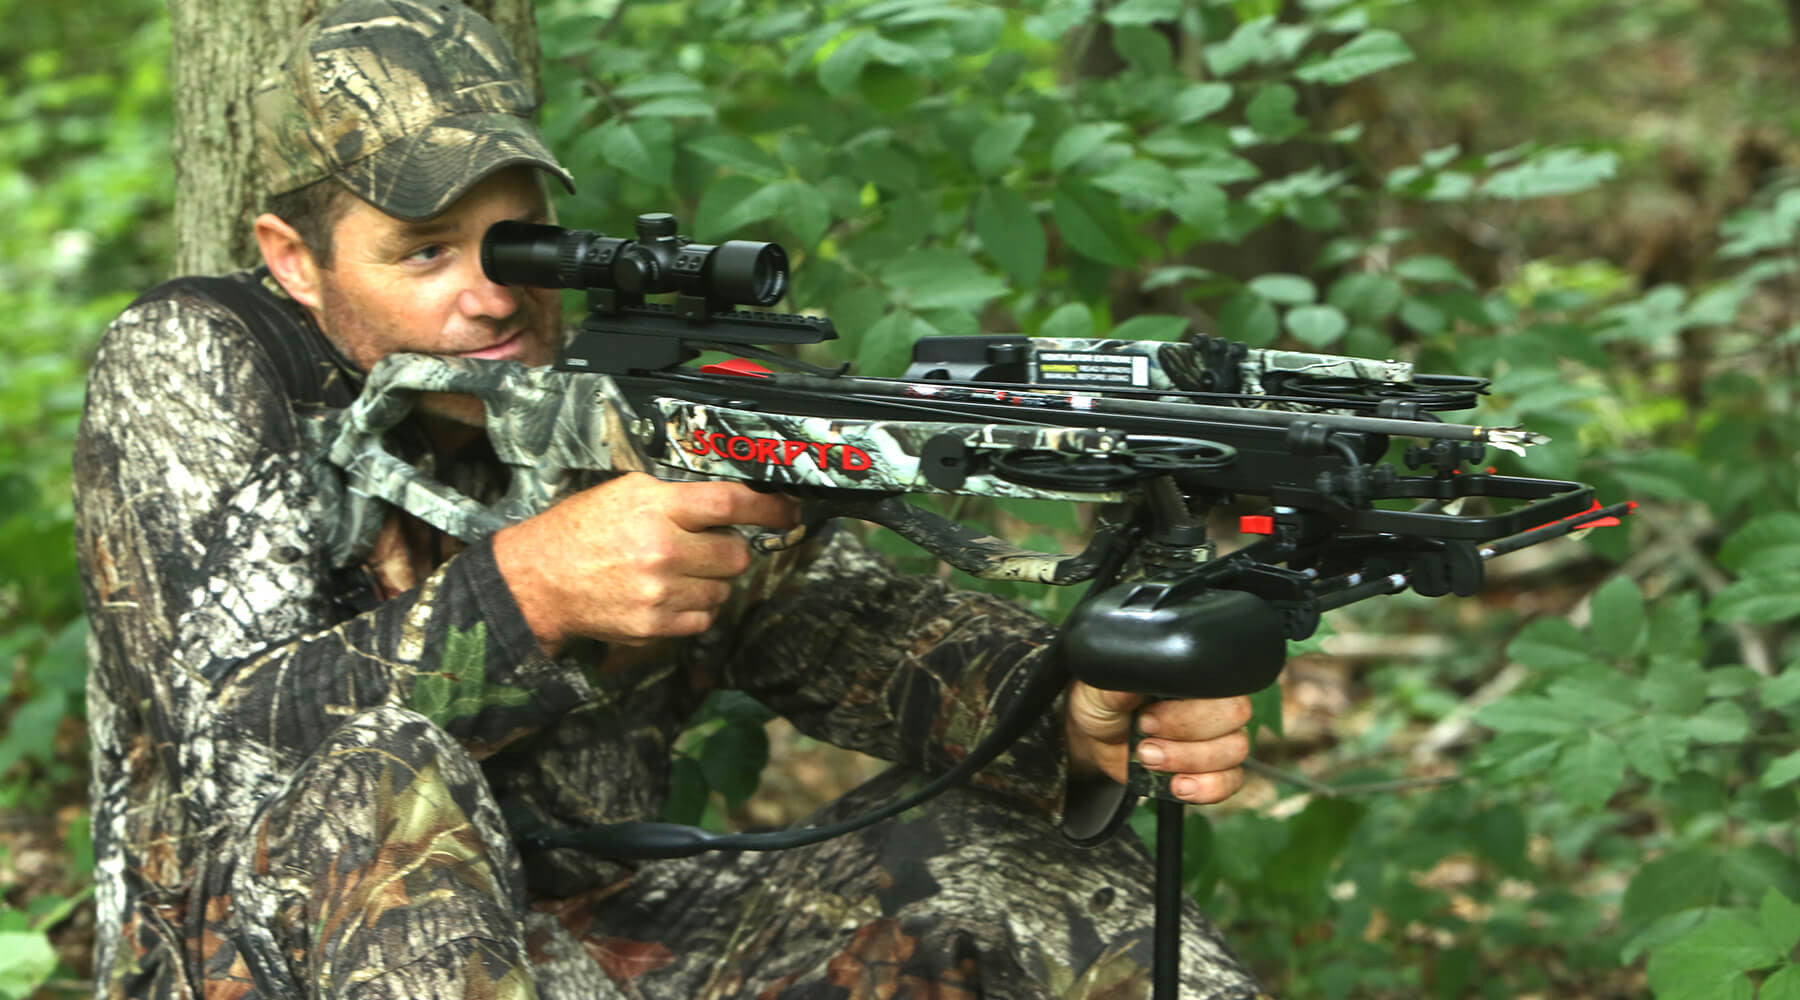 Gun to Crossbow: Tips on Making the Switch